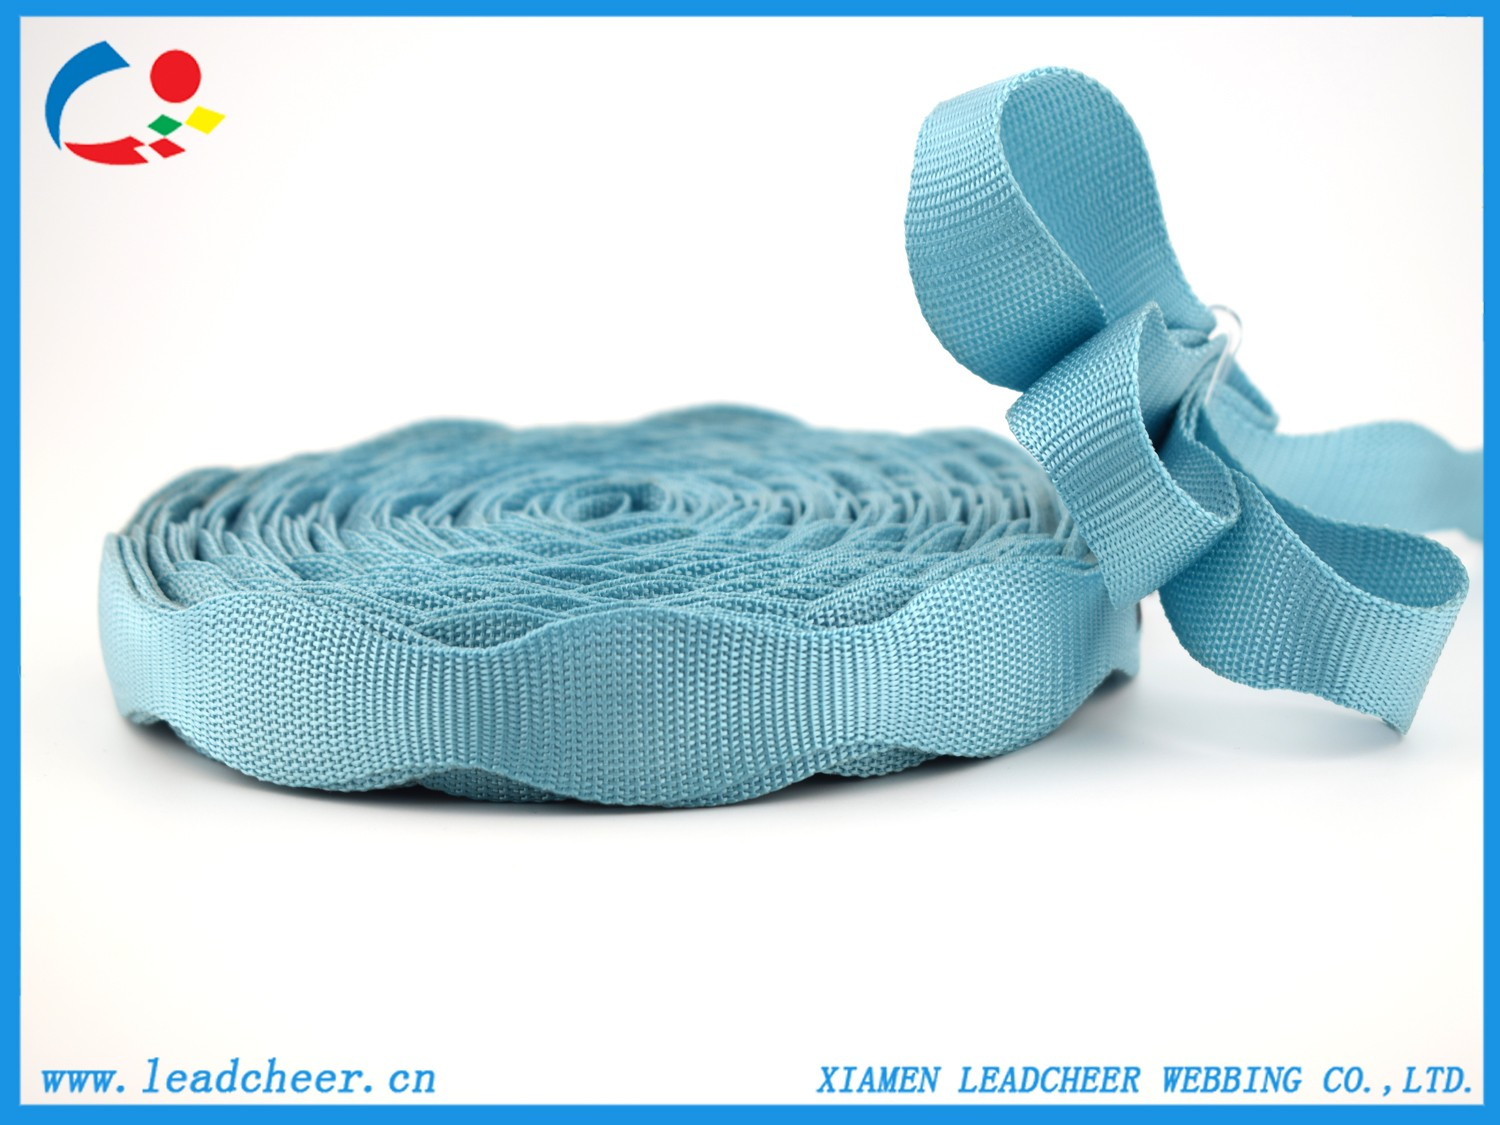 High quality Special design Wide & Narrow Variable Webbing for Decoration Quotes,China Special design Wide & Narrow Variable Webbing for Decoration Factory,Special design Wide & Narrow Variable Webbing for Decoration Purchasing